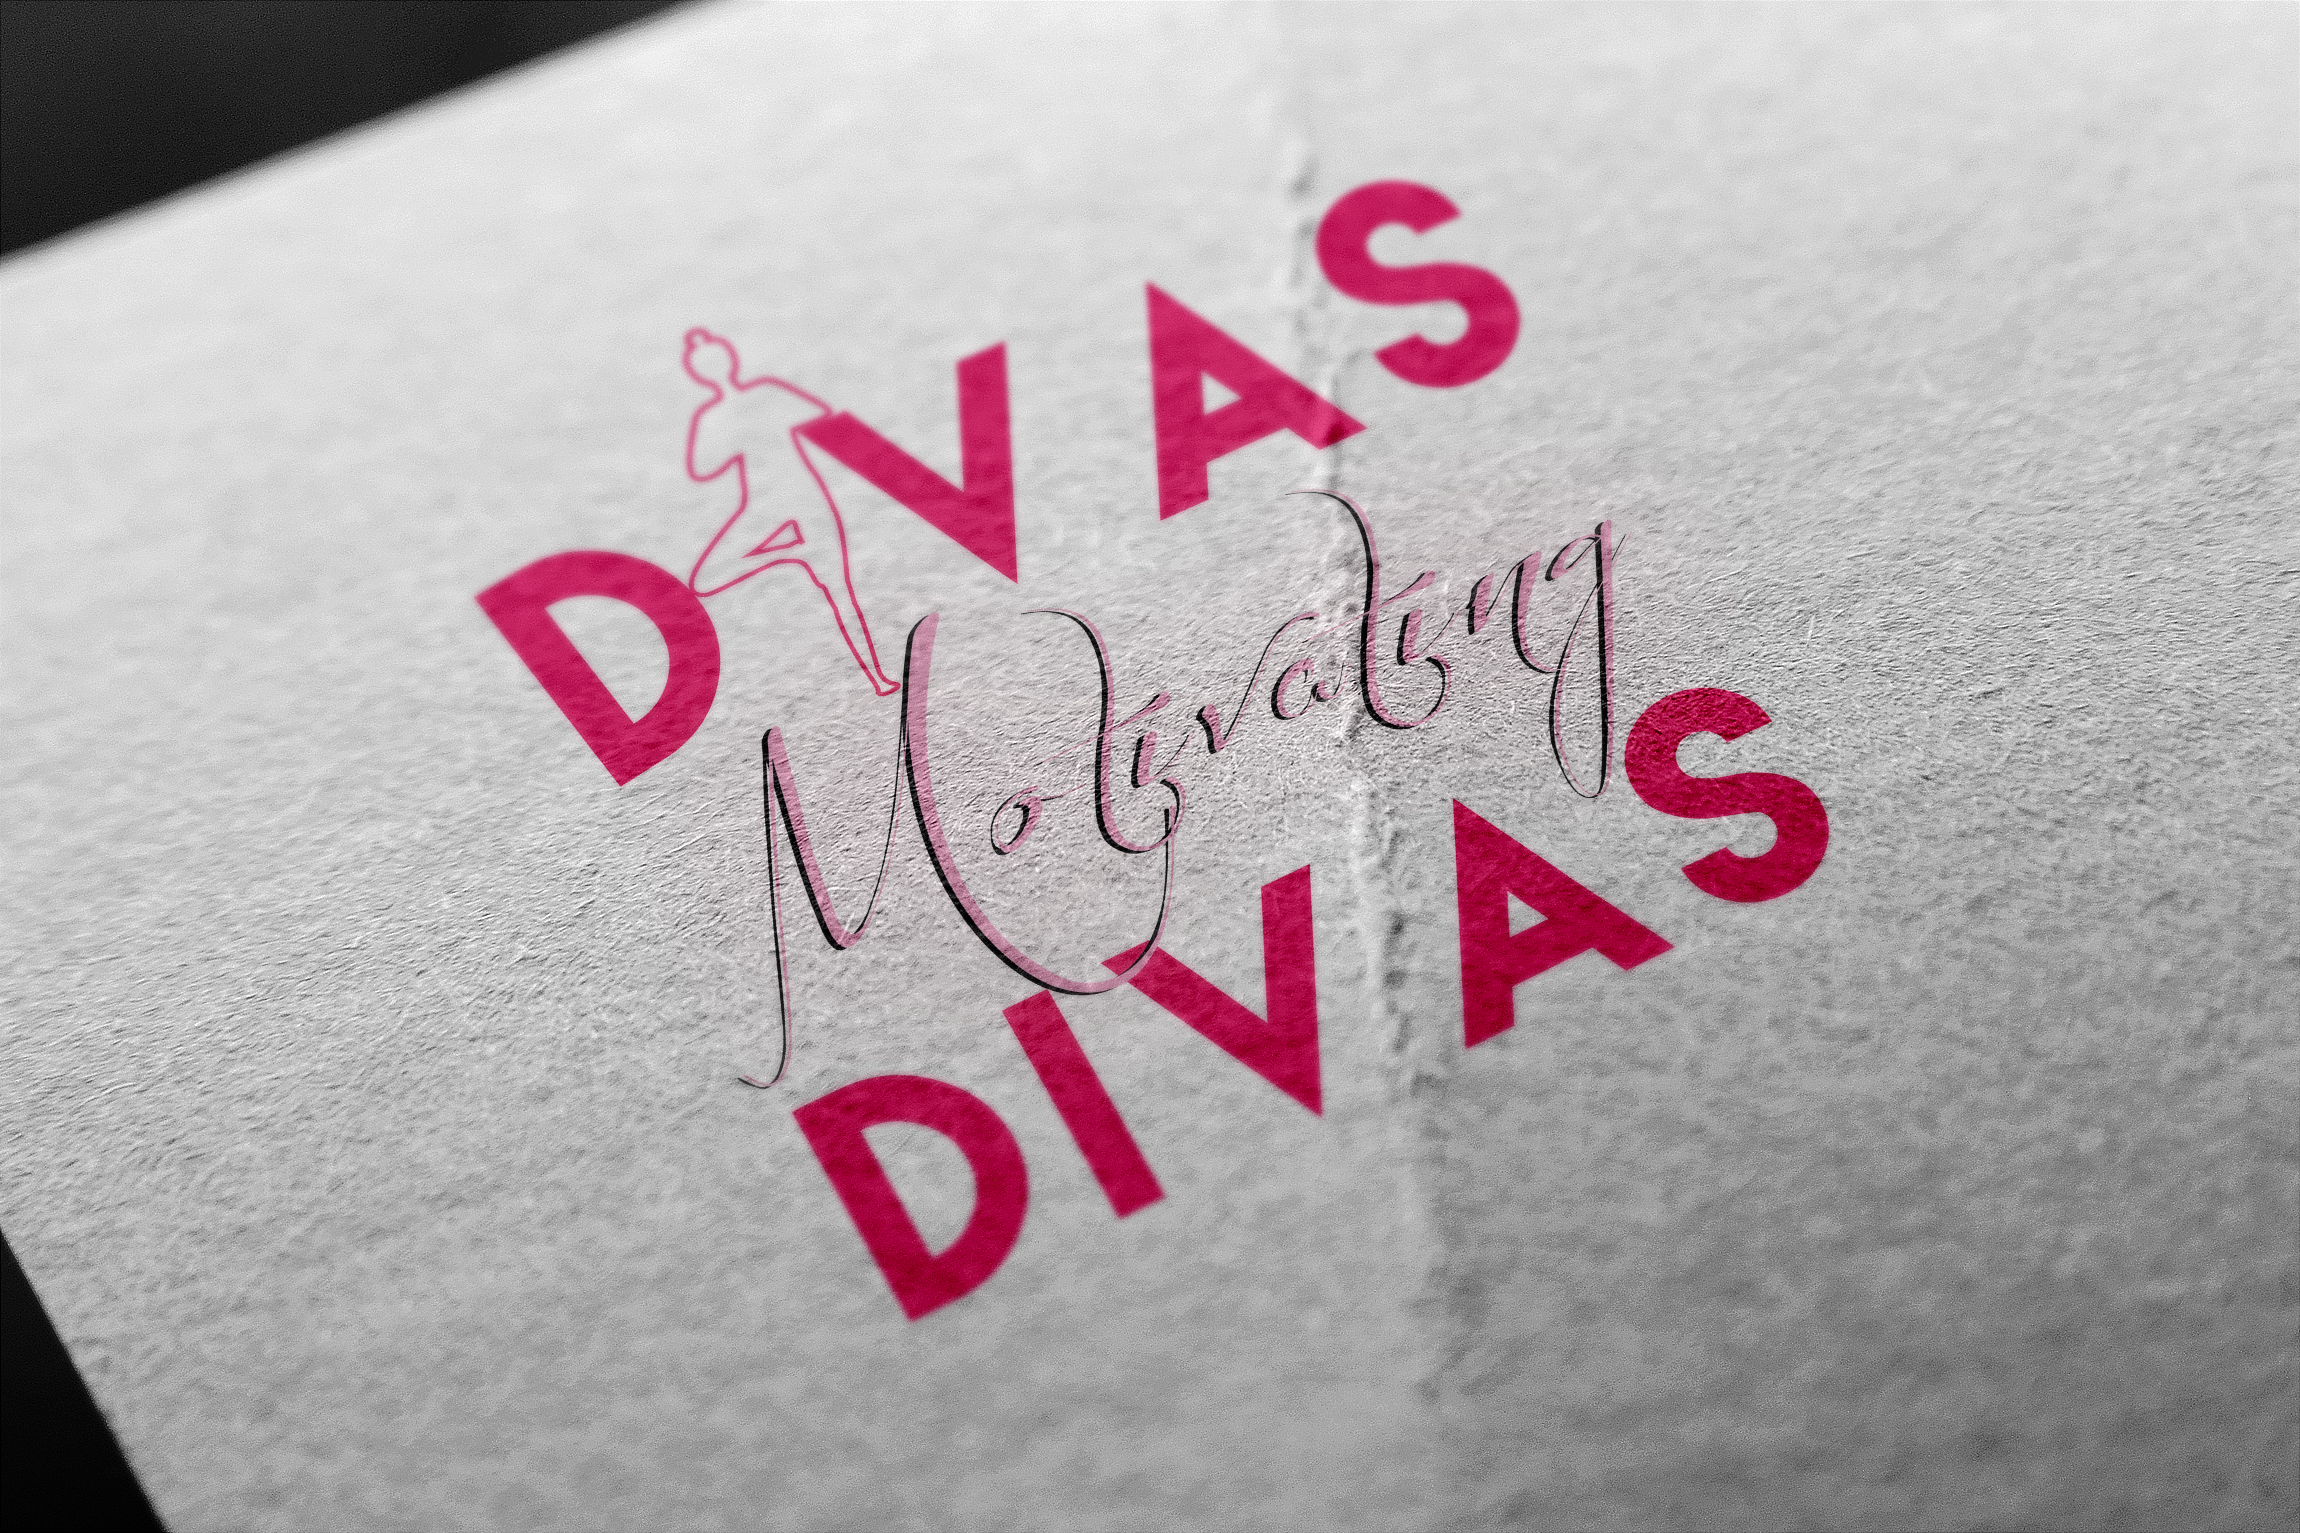 Divas Motivating Divas Logo